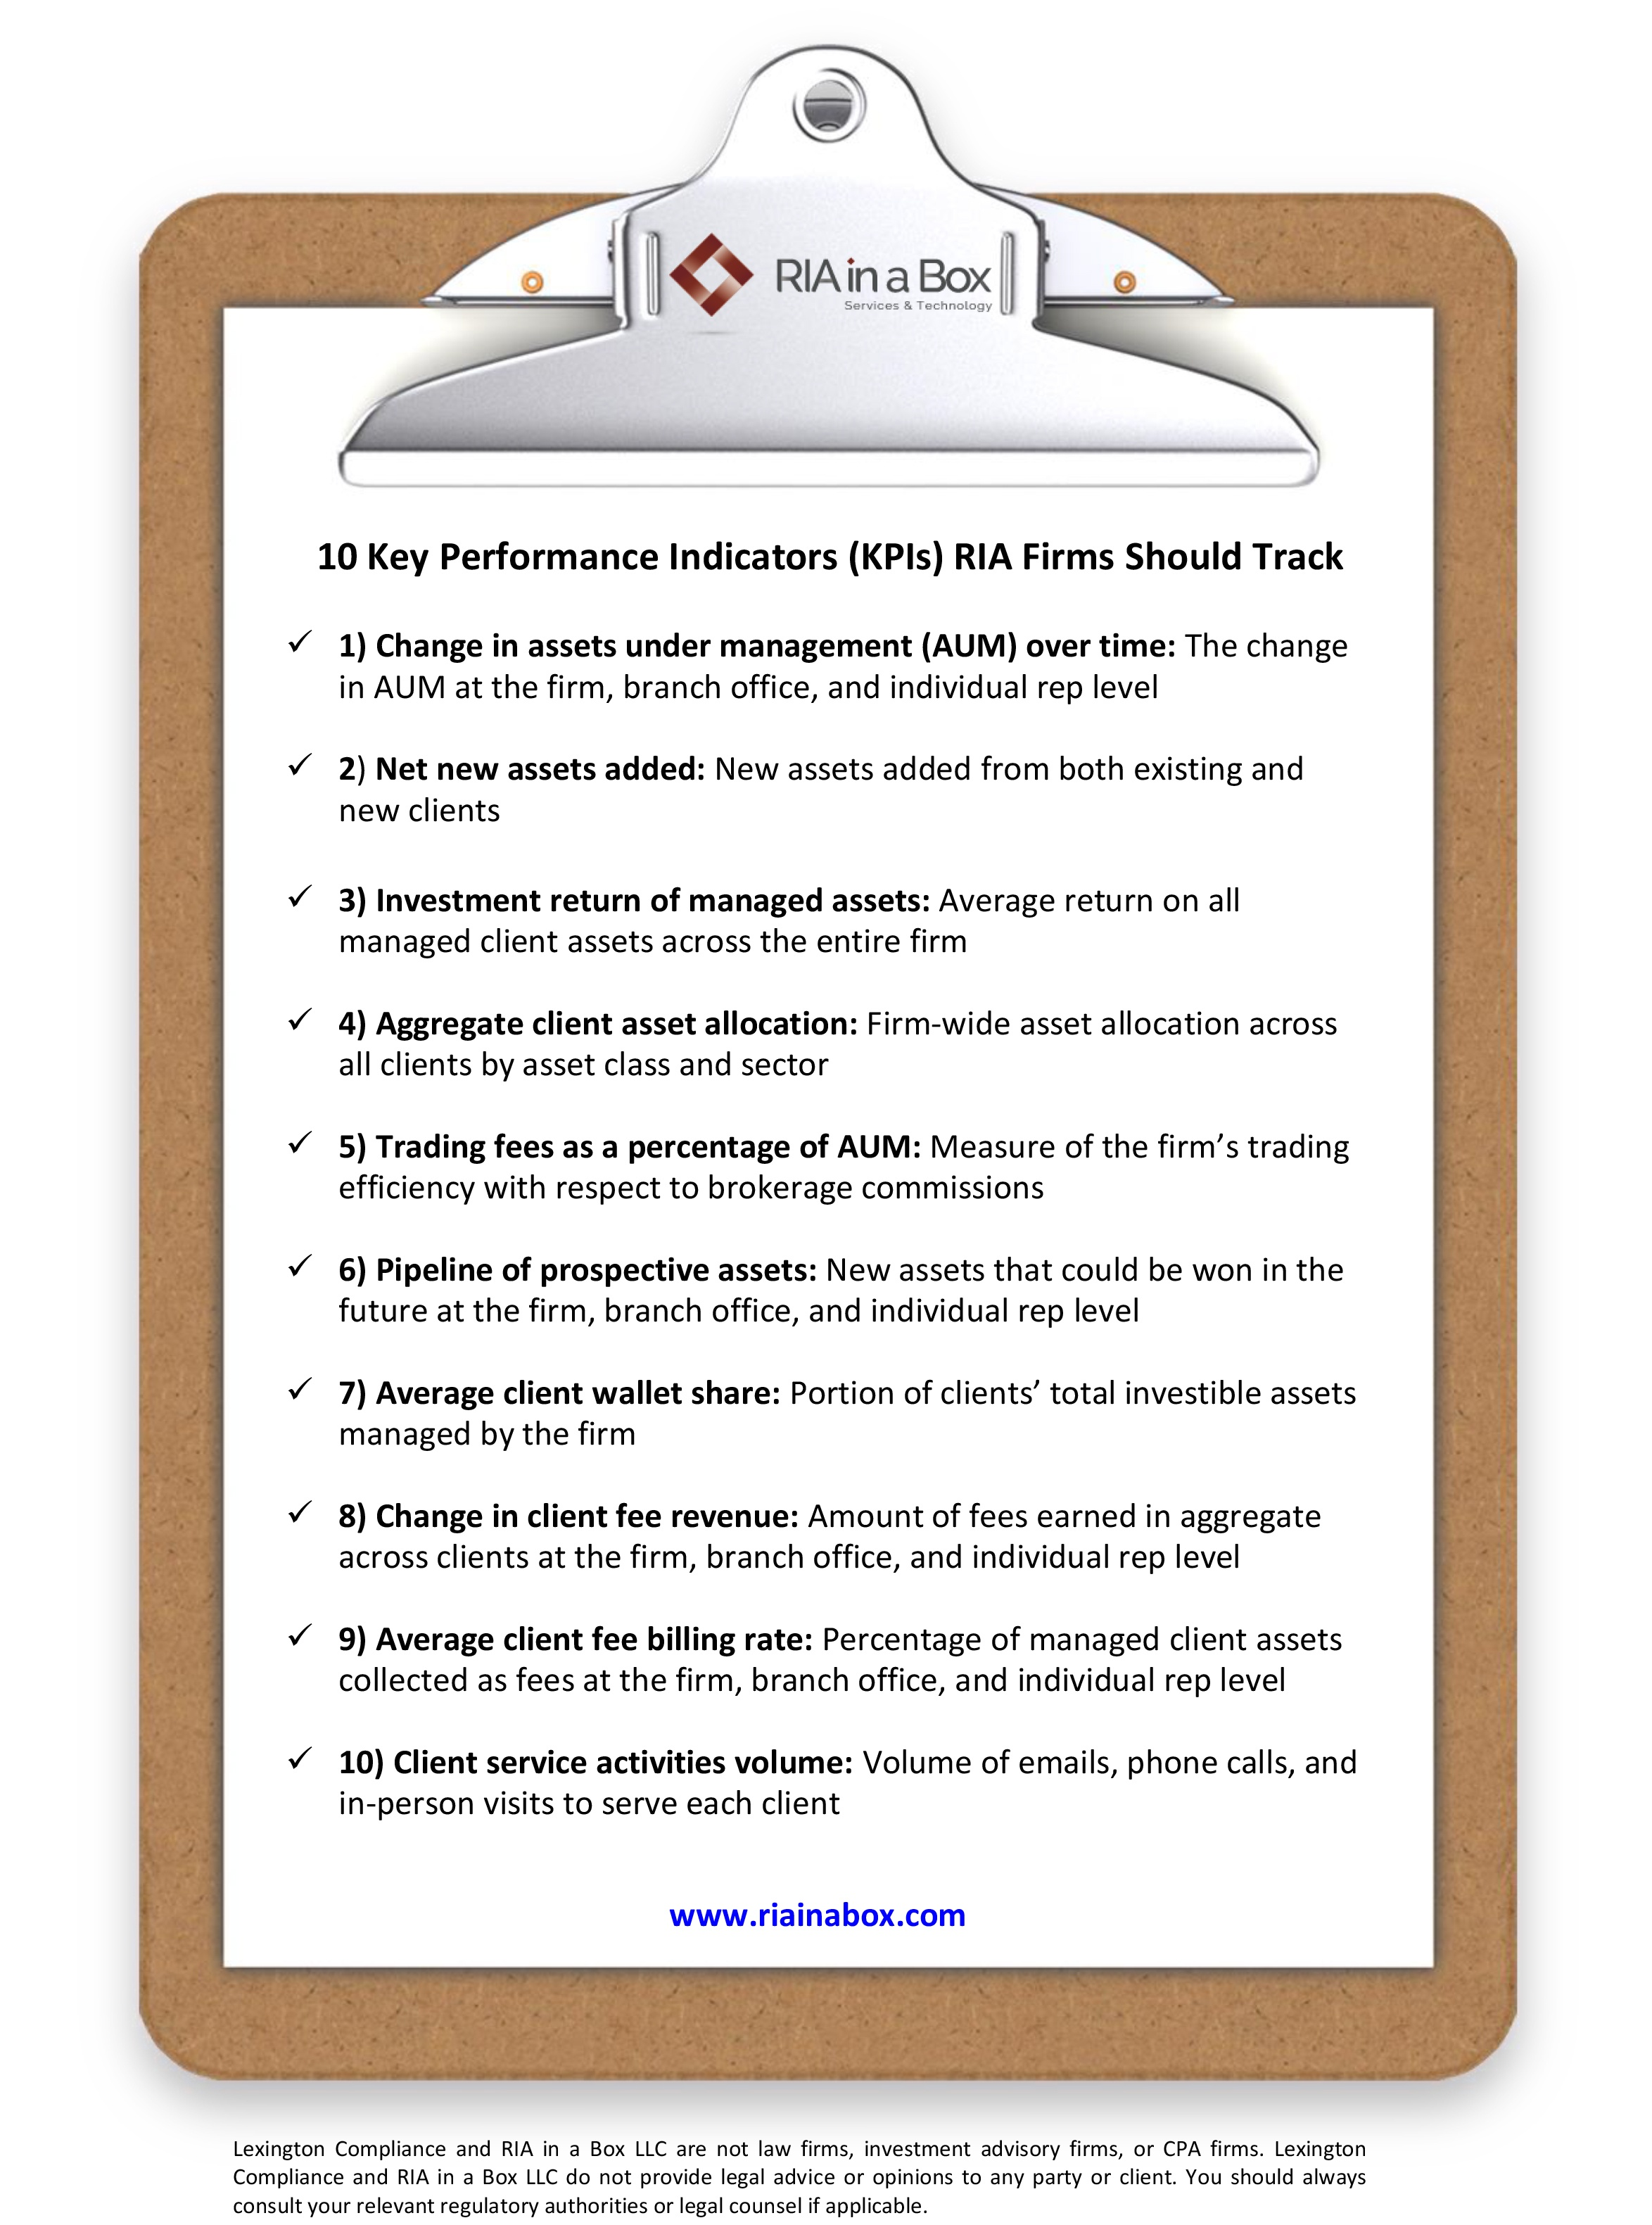 10 Key Performance Indicators_Icon.jpg